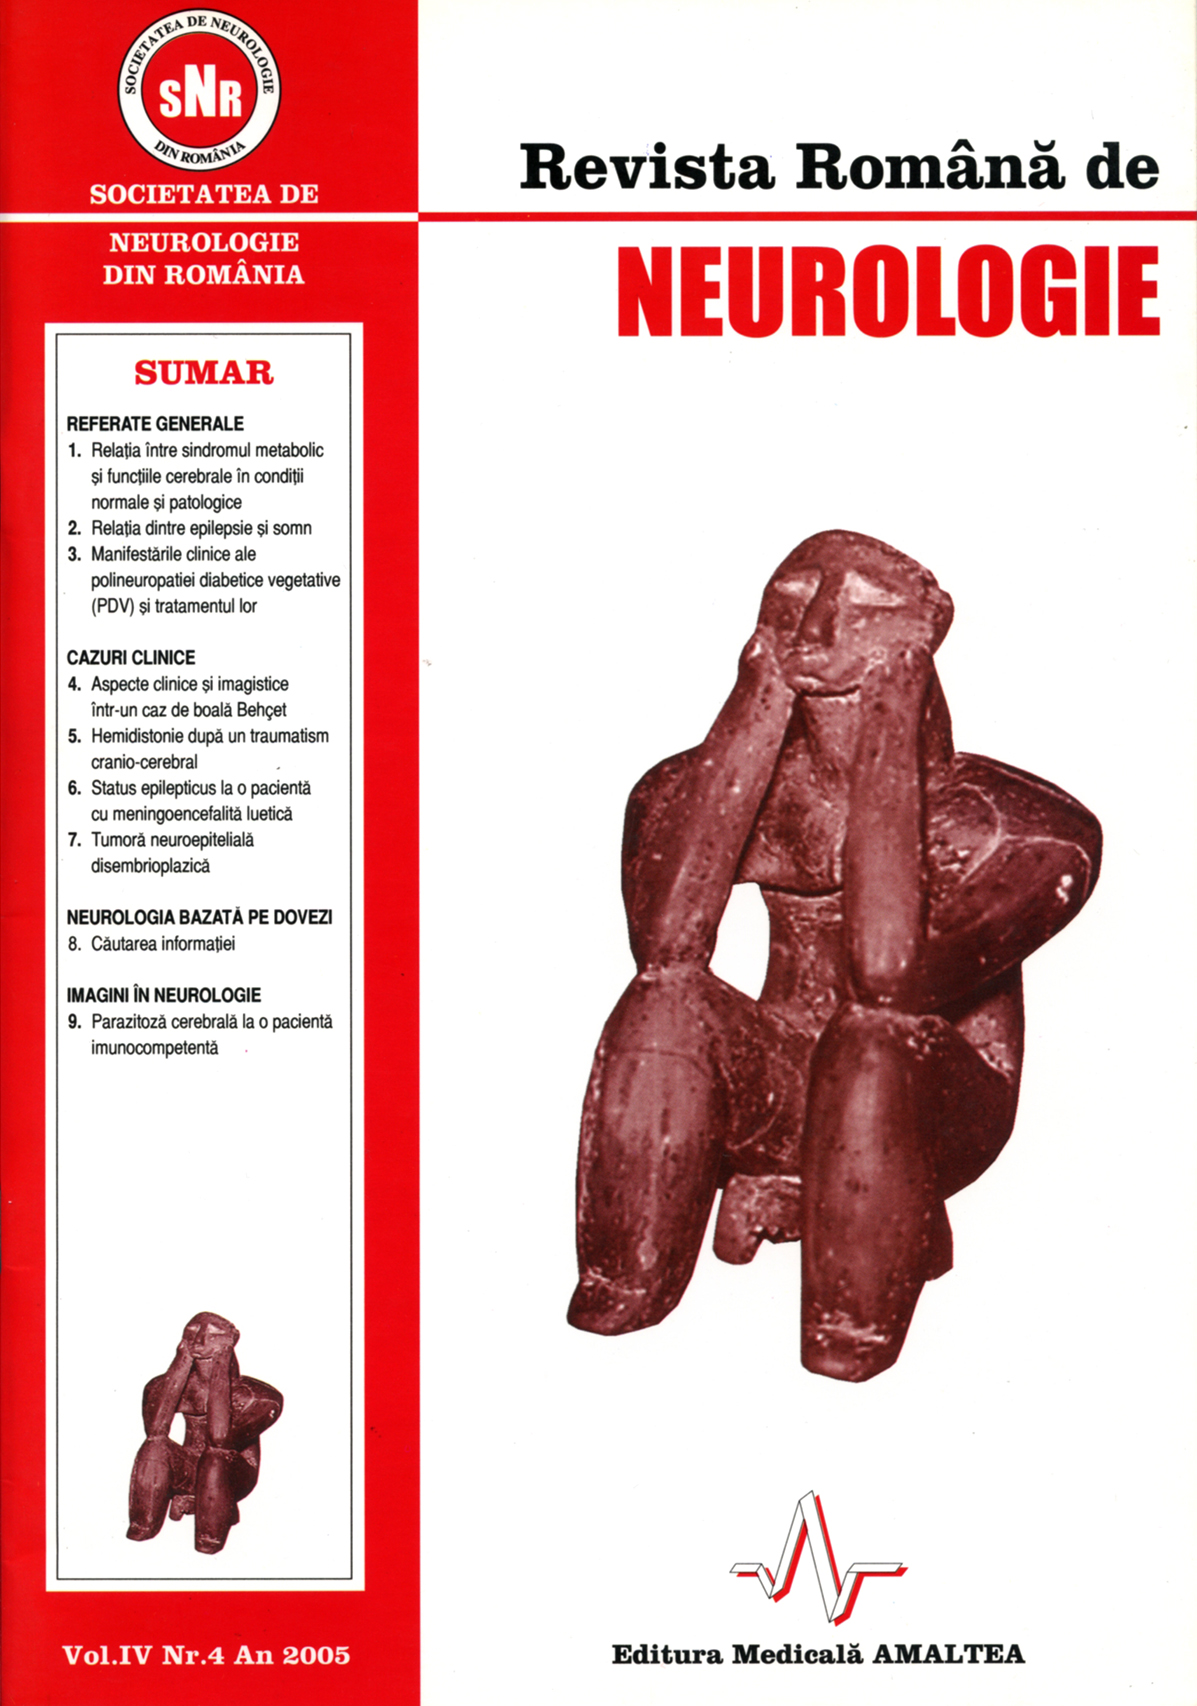 Romanian Journal of Neurology, Volume IV, No. 4, 2005